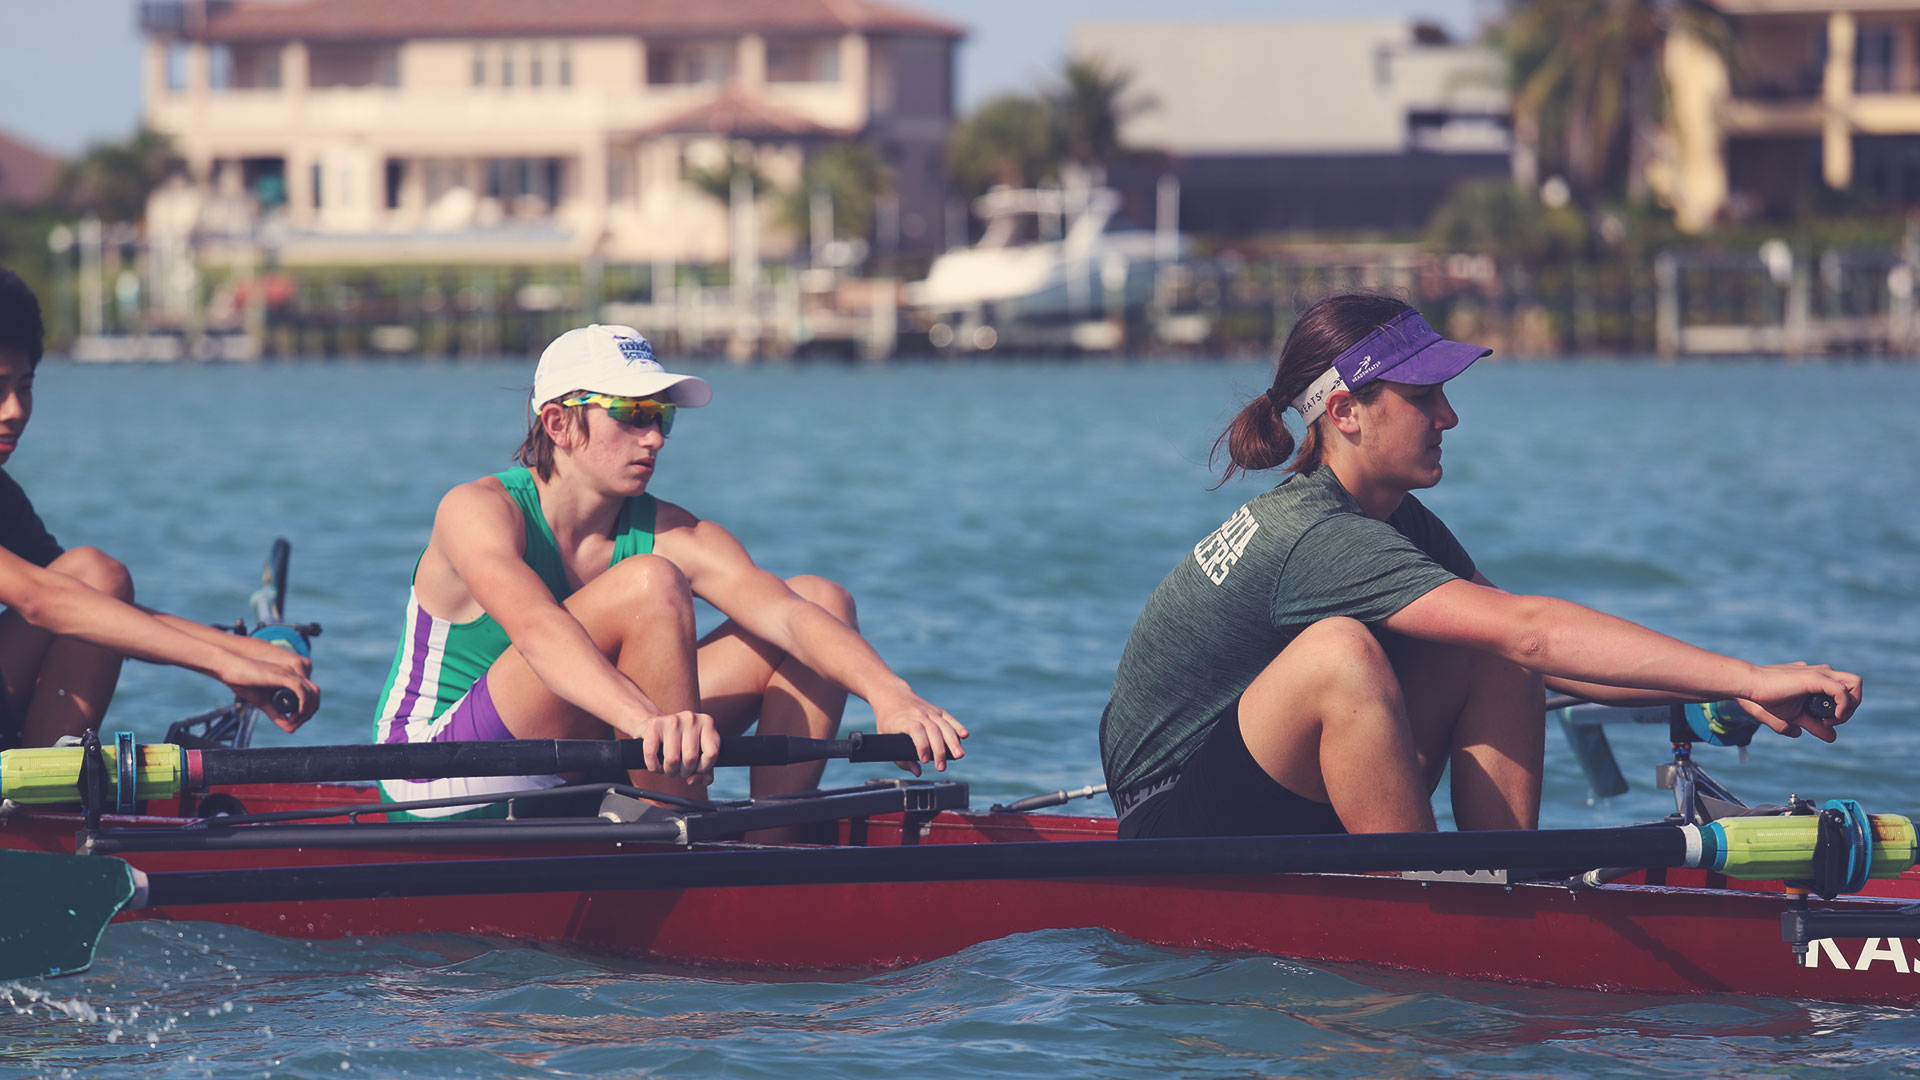 Patch.com – The Sarasota Scullers have a history of success